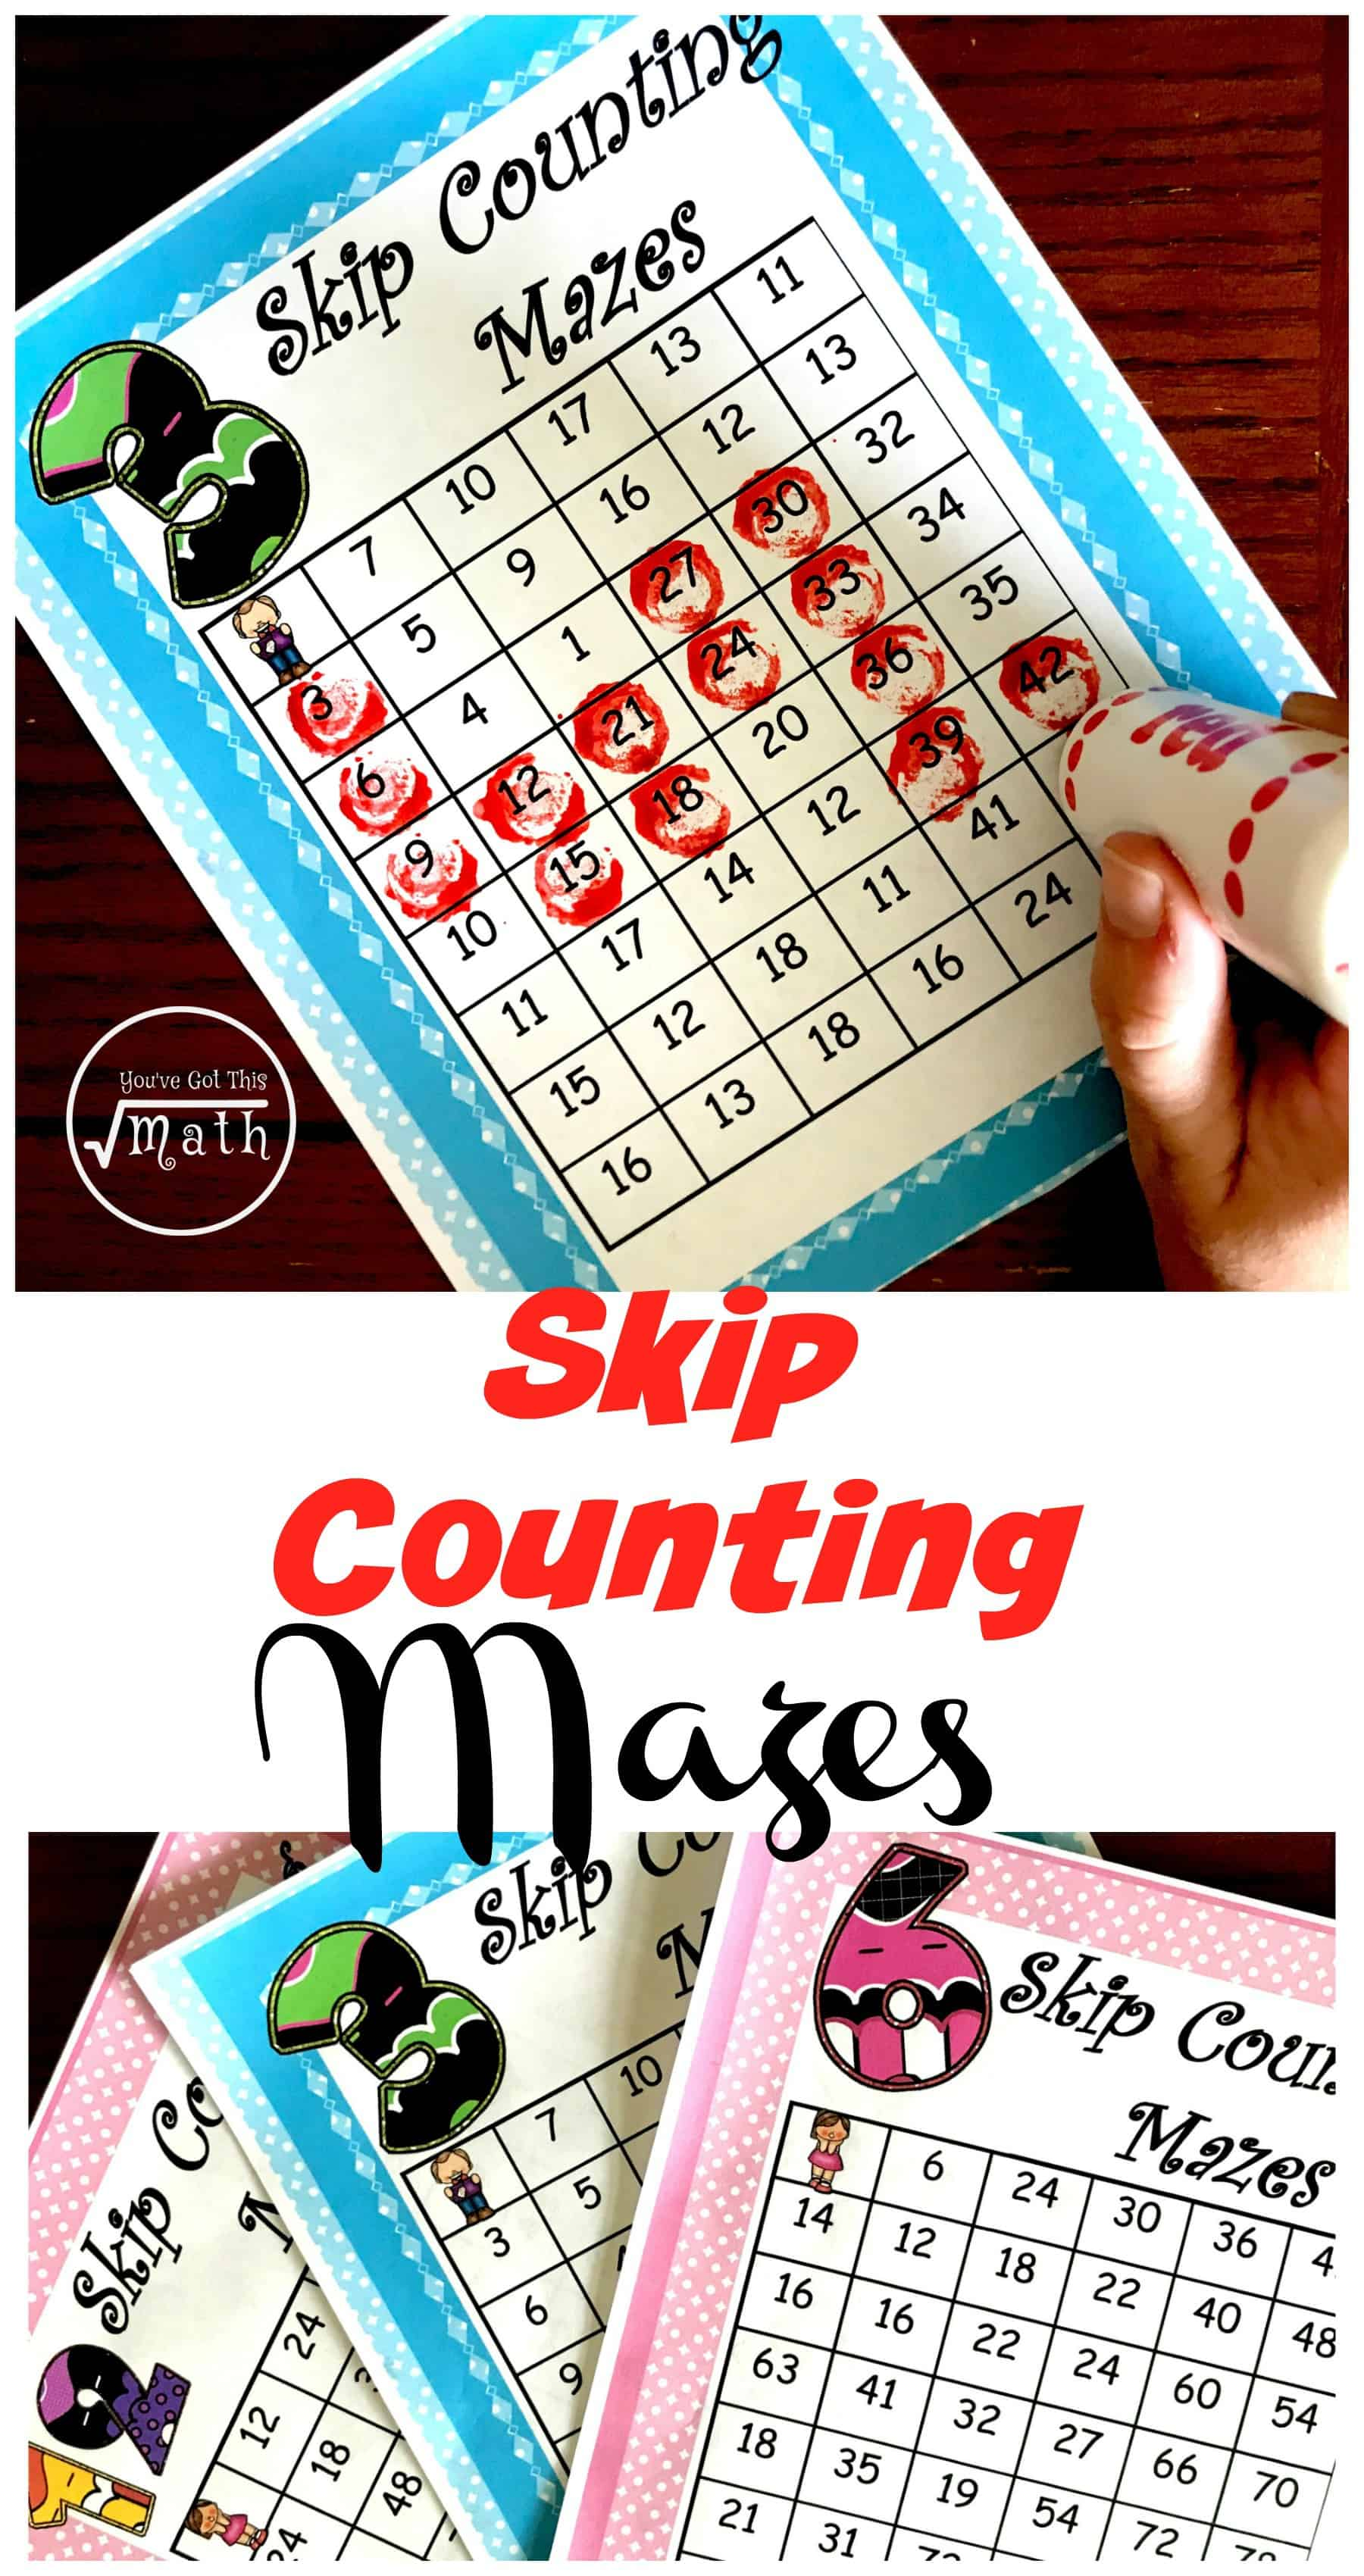 These mazes are a great way to practice skip counting. There is one sheet for each number, two through fifteen. Students have to find fifteen numbers in each maze. This helps them learn their multiplication facts to 15. (2 x 15) (3 x 15) Great for the new CC math memory work.